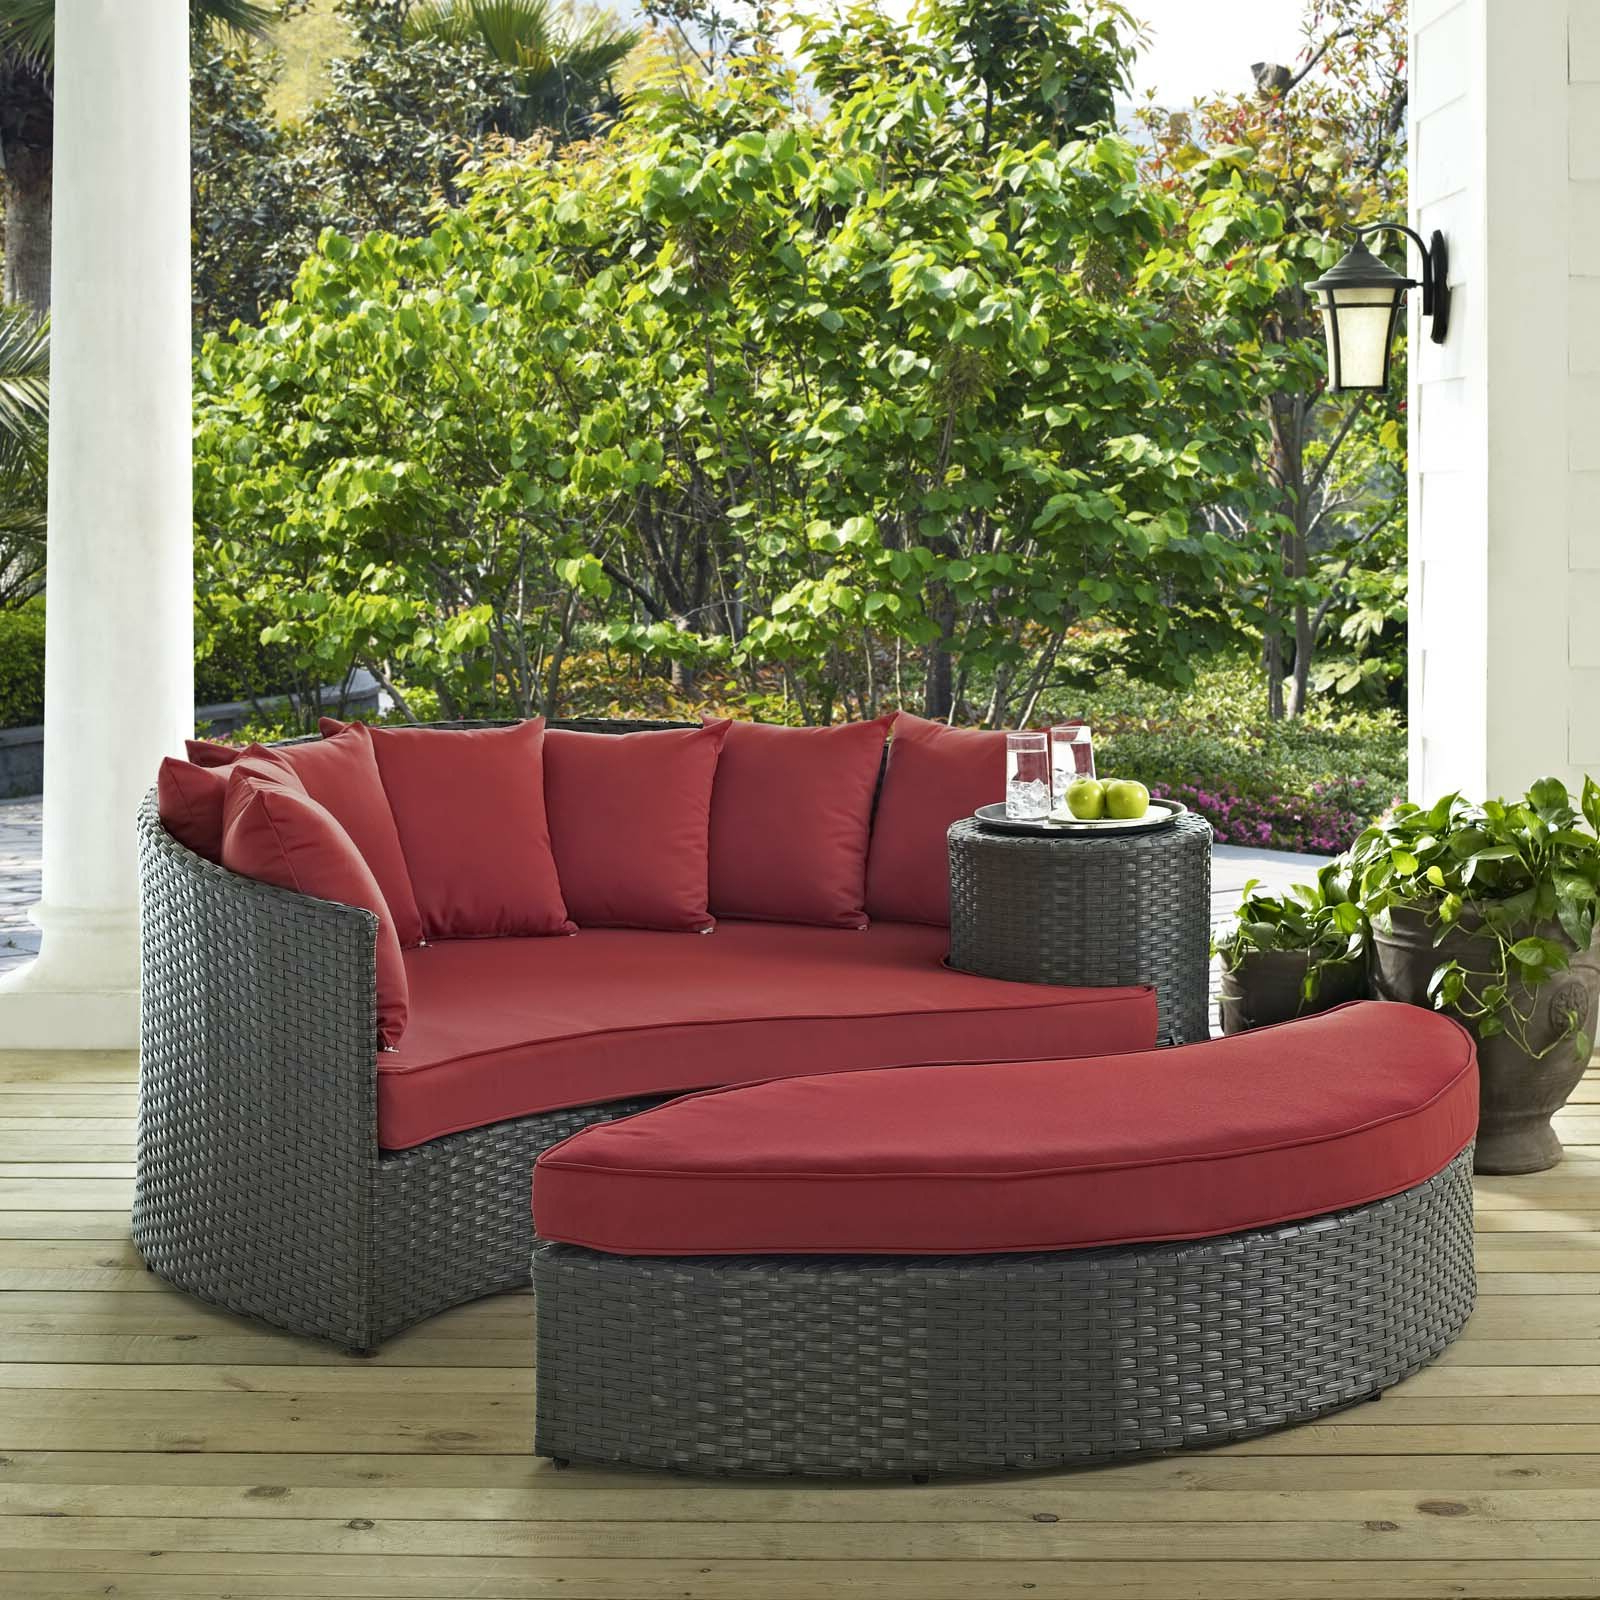 Lavina Outdoor Patio Daybeds With Cushions With Trendy Tripp Patio Daybed With Cushions (View 19 of 20)